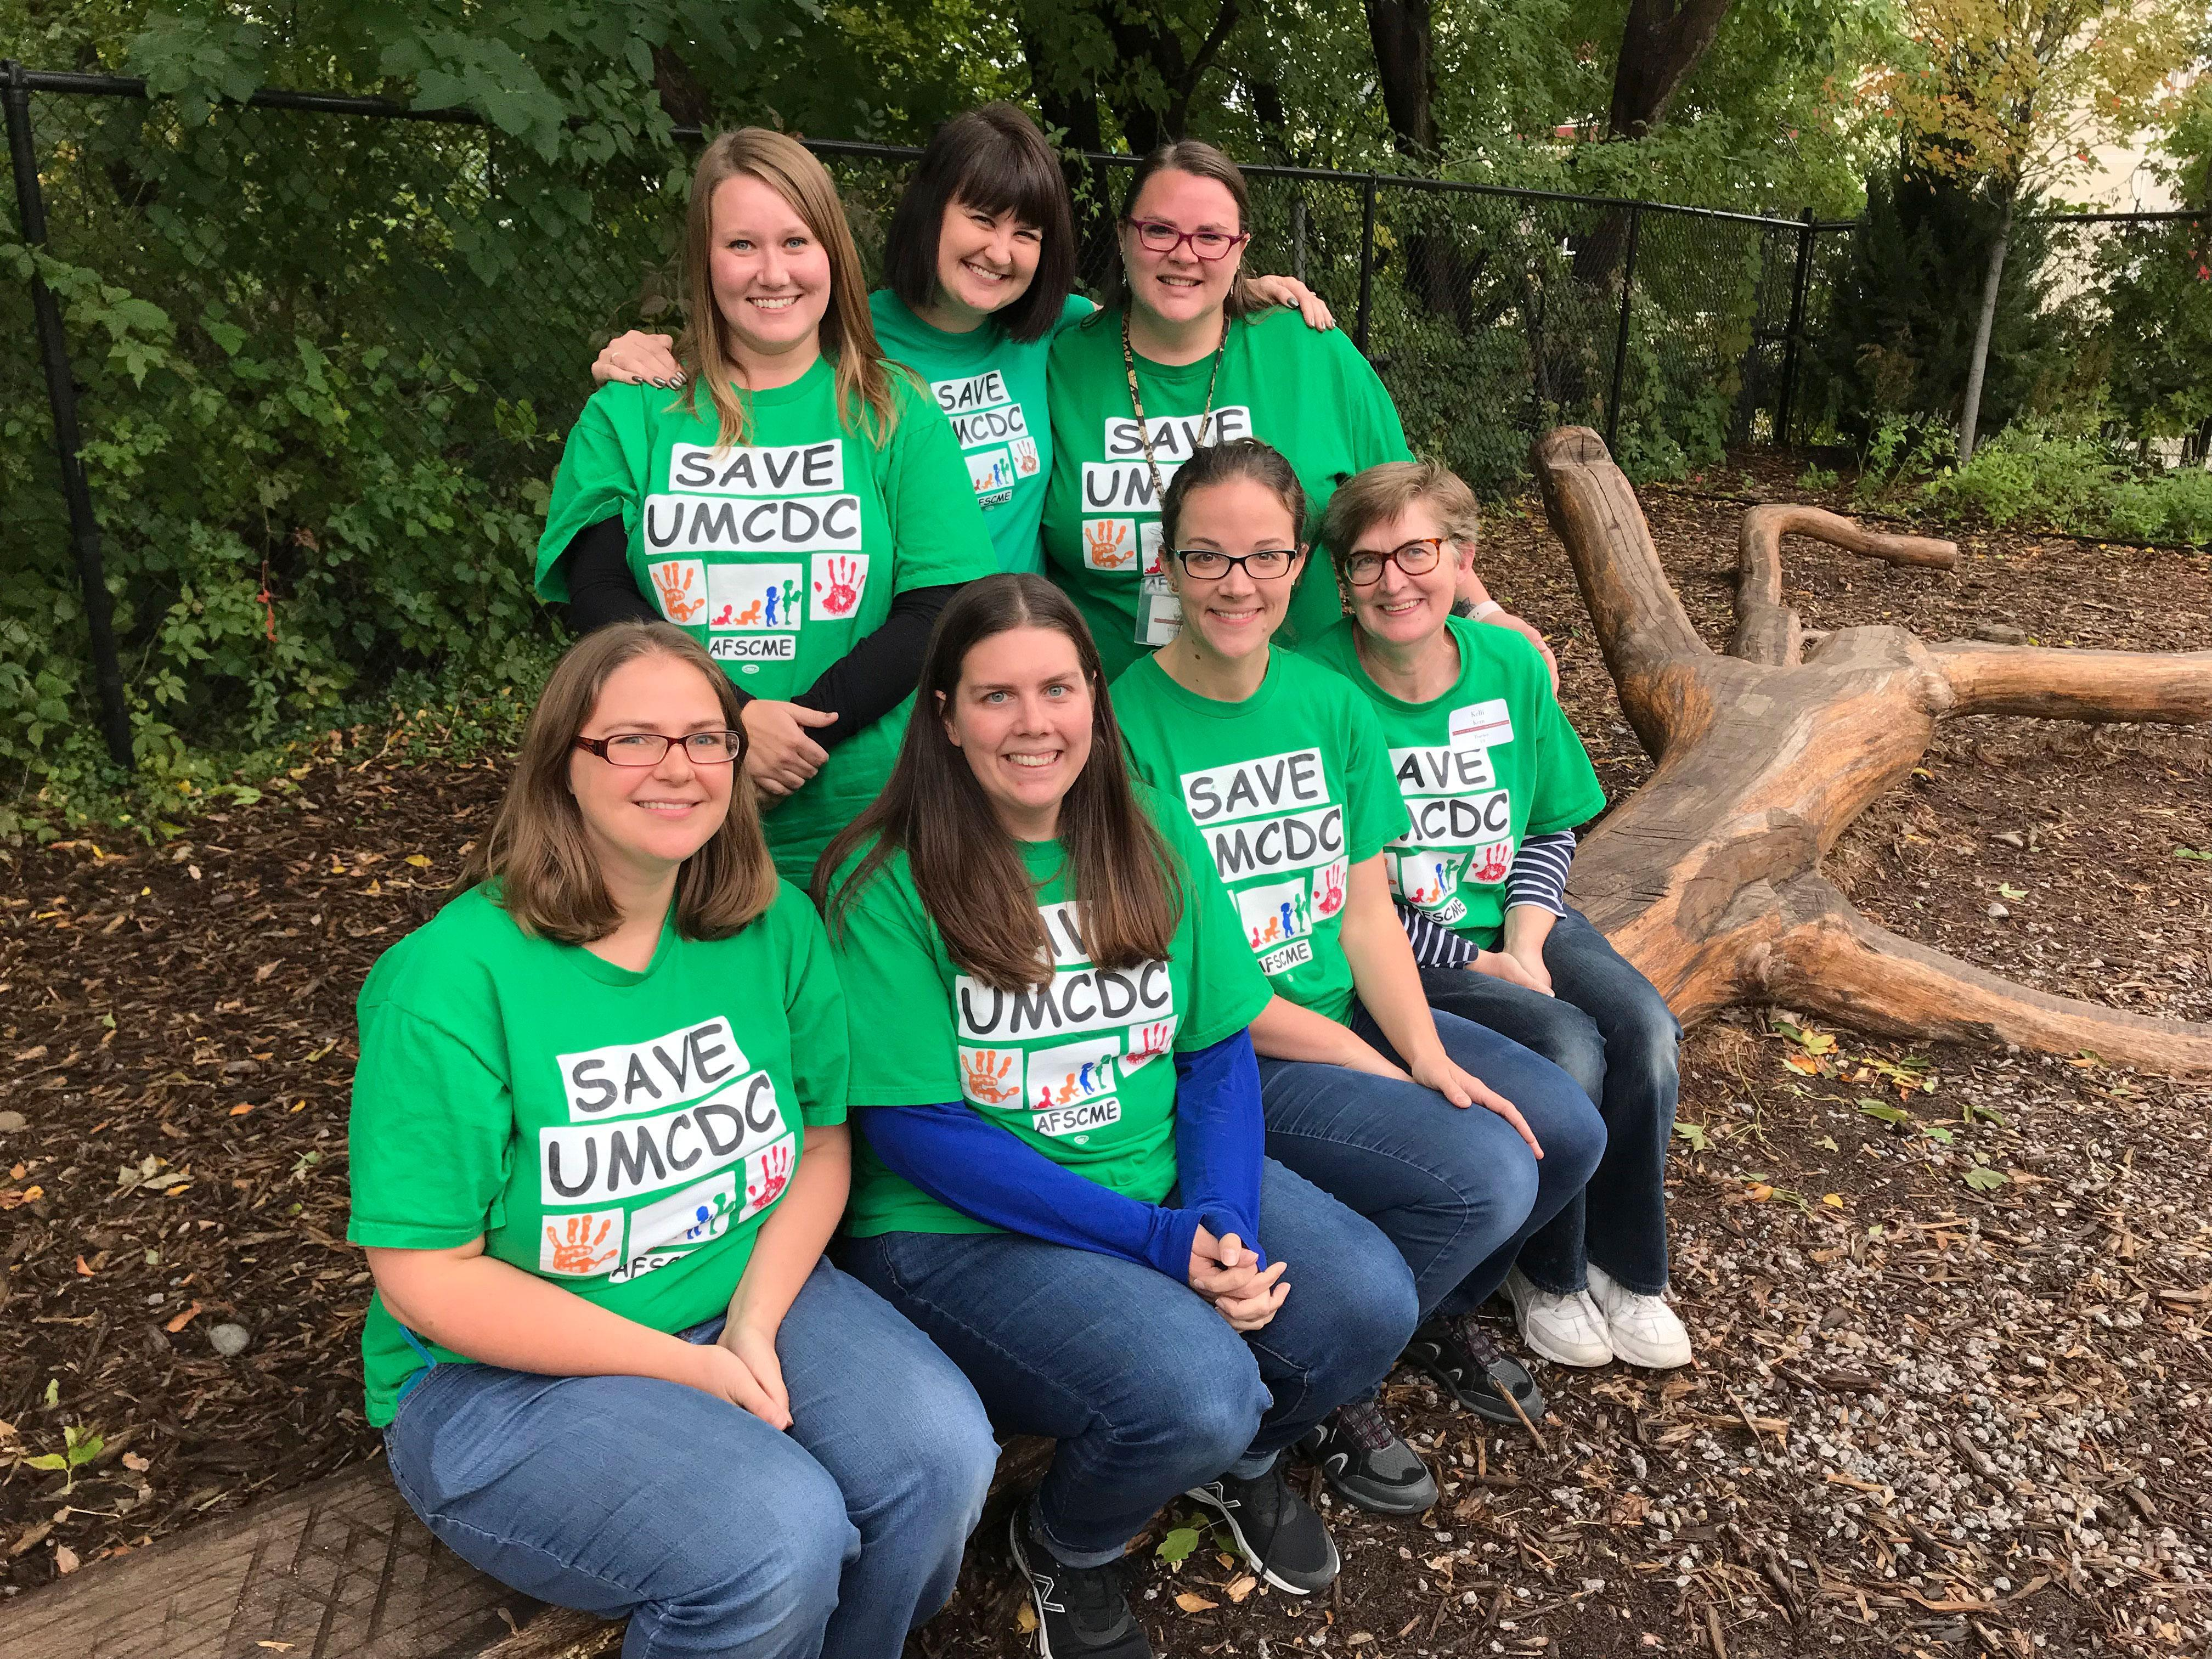 Front row, left to right: Steward Emily Erpelding; staff campaign co-chair, Heather Lynch; Laura Elliott; and Kelli Kern. Back row, left to right: Mandy Sumwalt; Lily Bray; and co-chair Magn Wakeham.